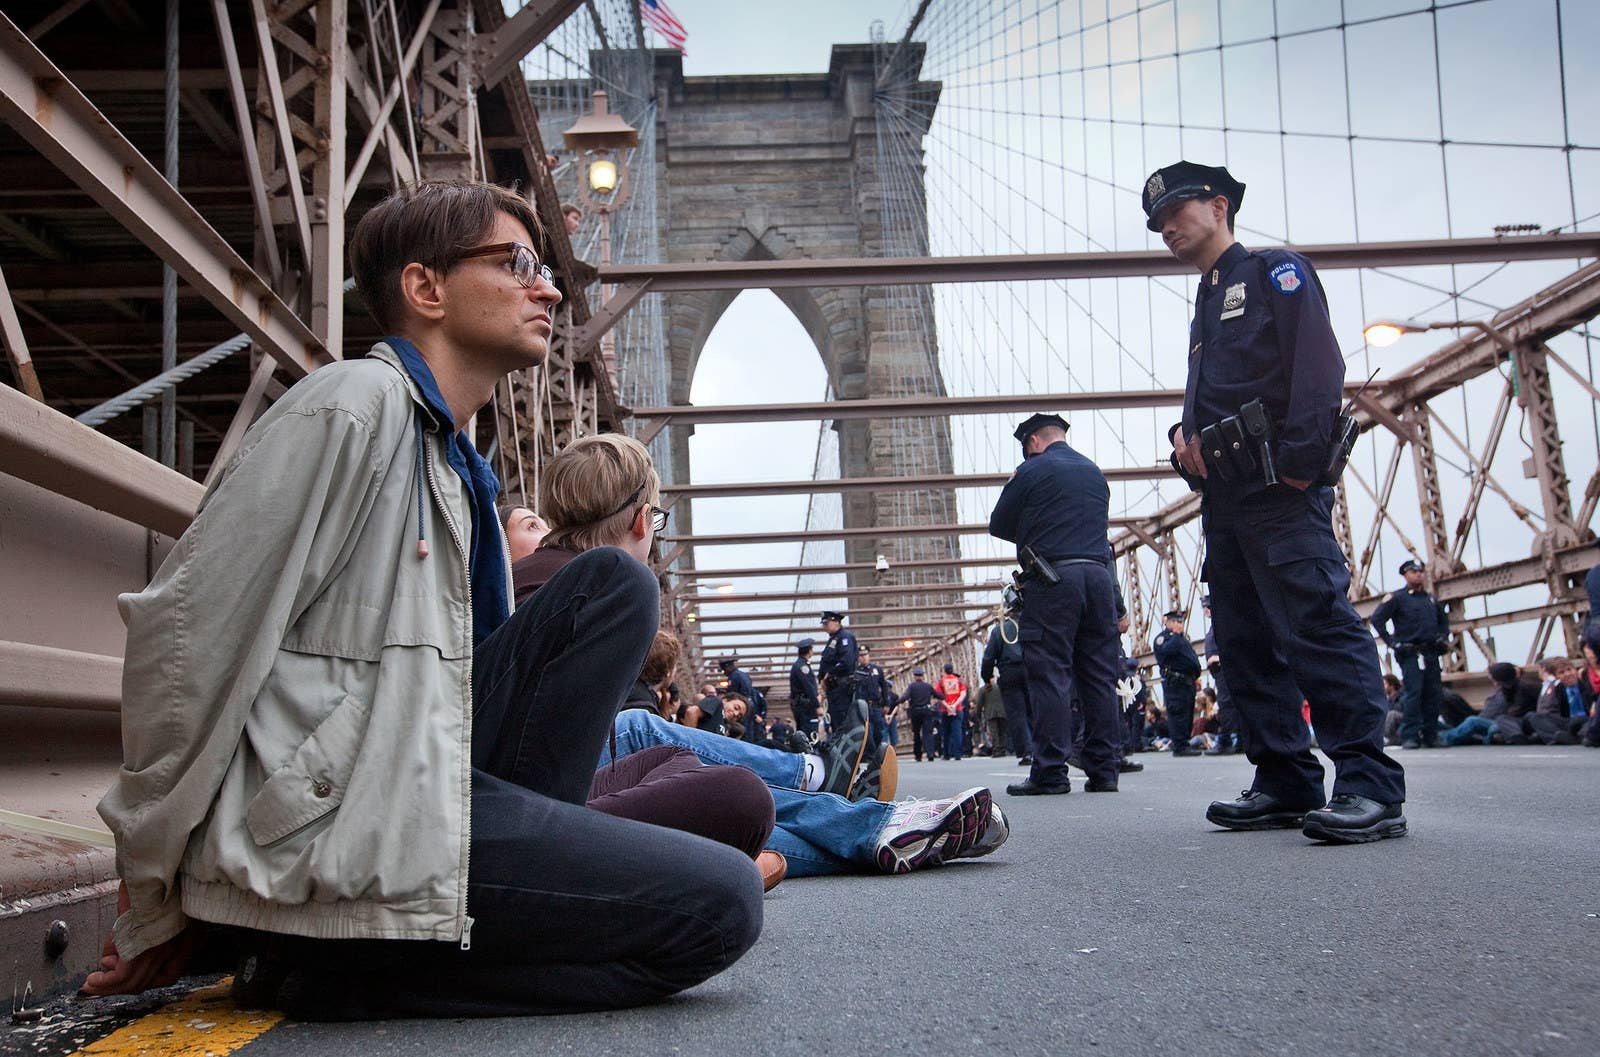 Detained protesters are forced to sit on both sides of the Brooklyn Bridge while waiting to be taken to jail on Oct. 1, 2011.